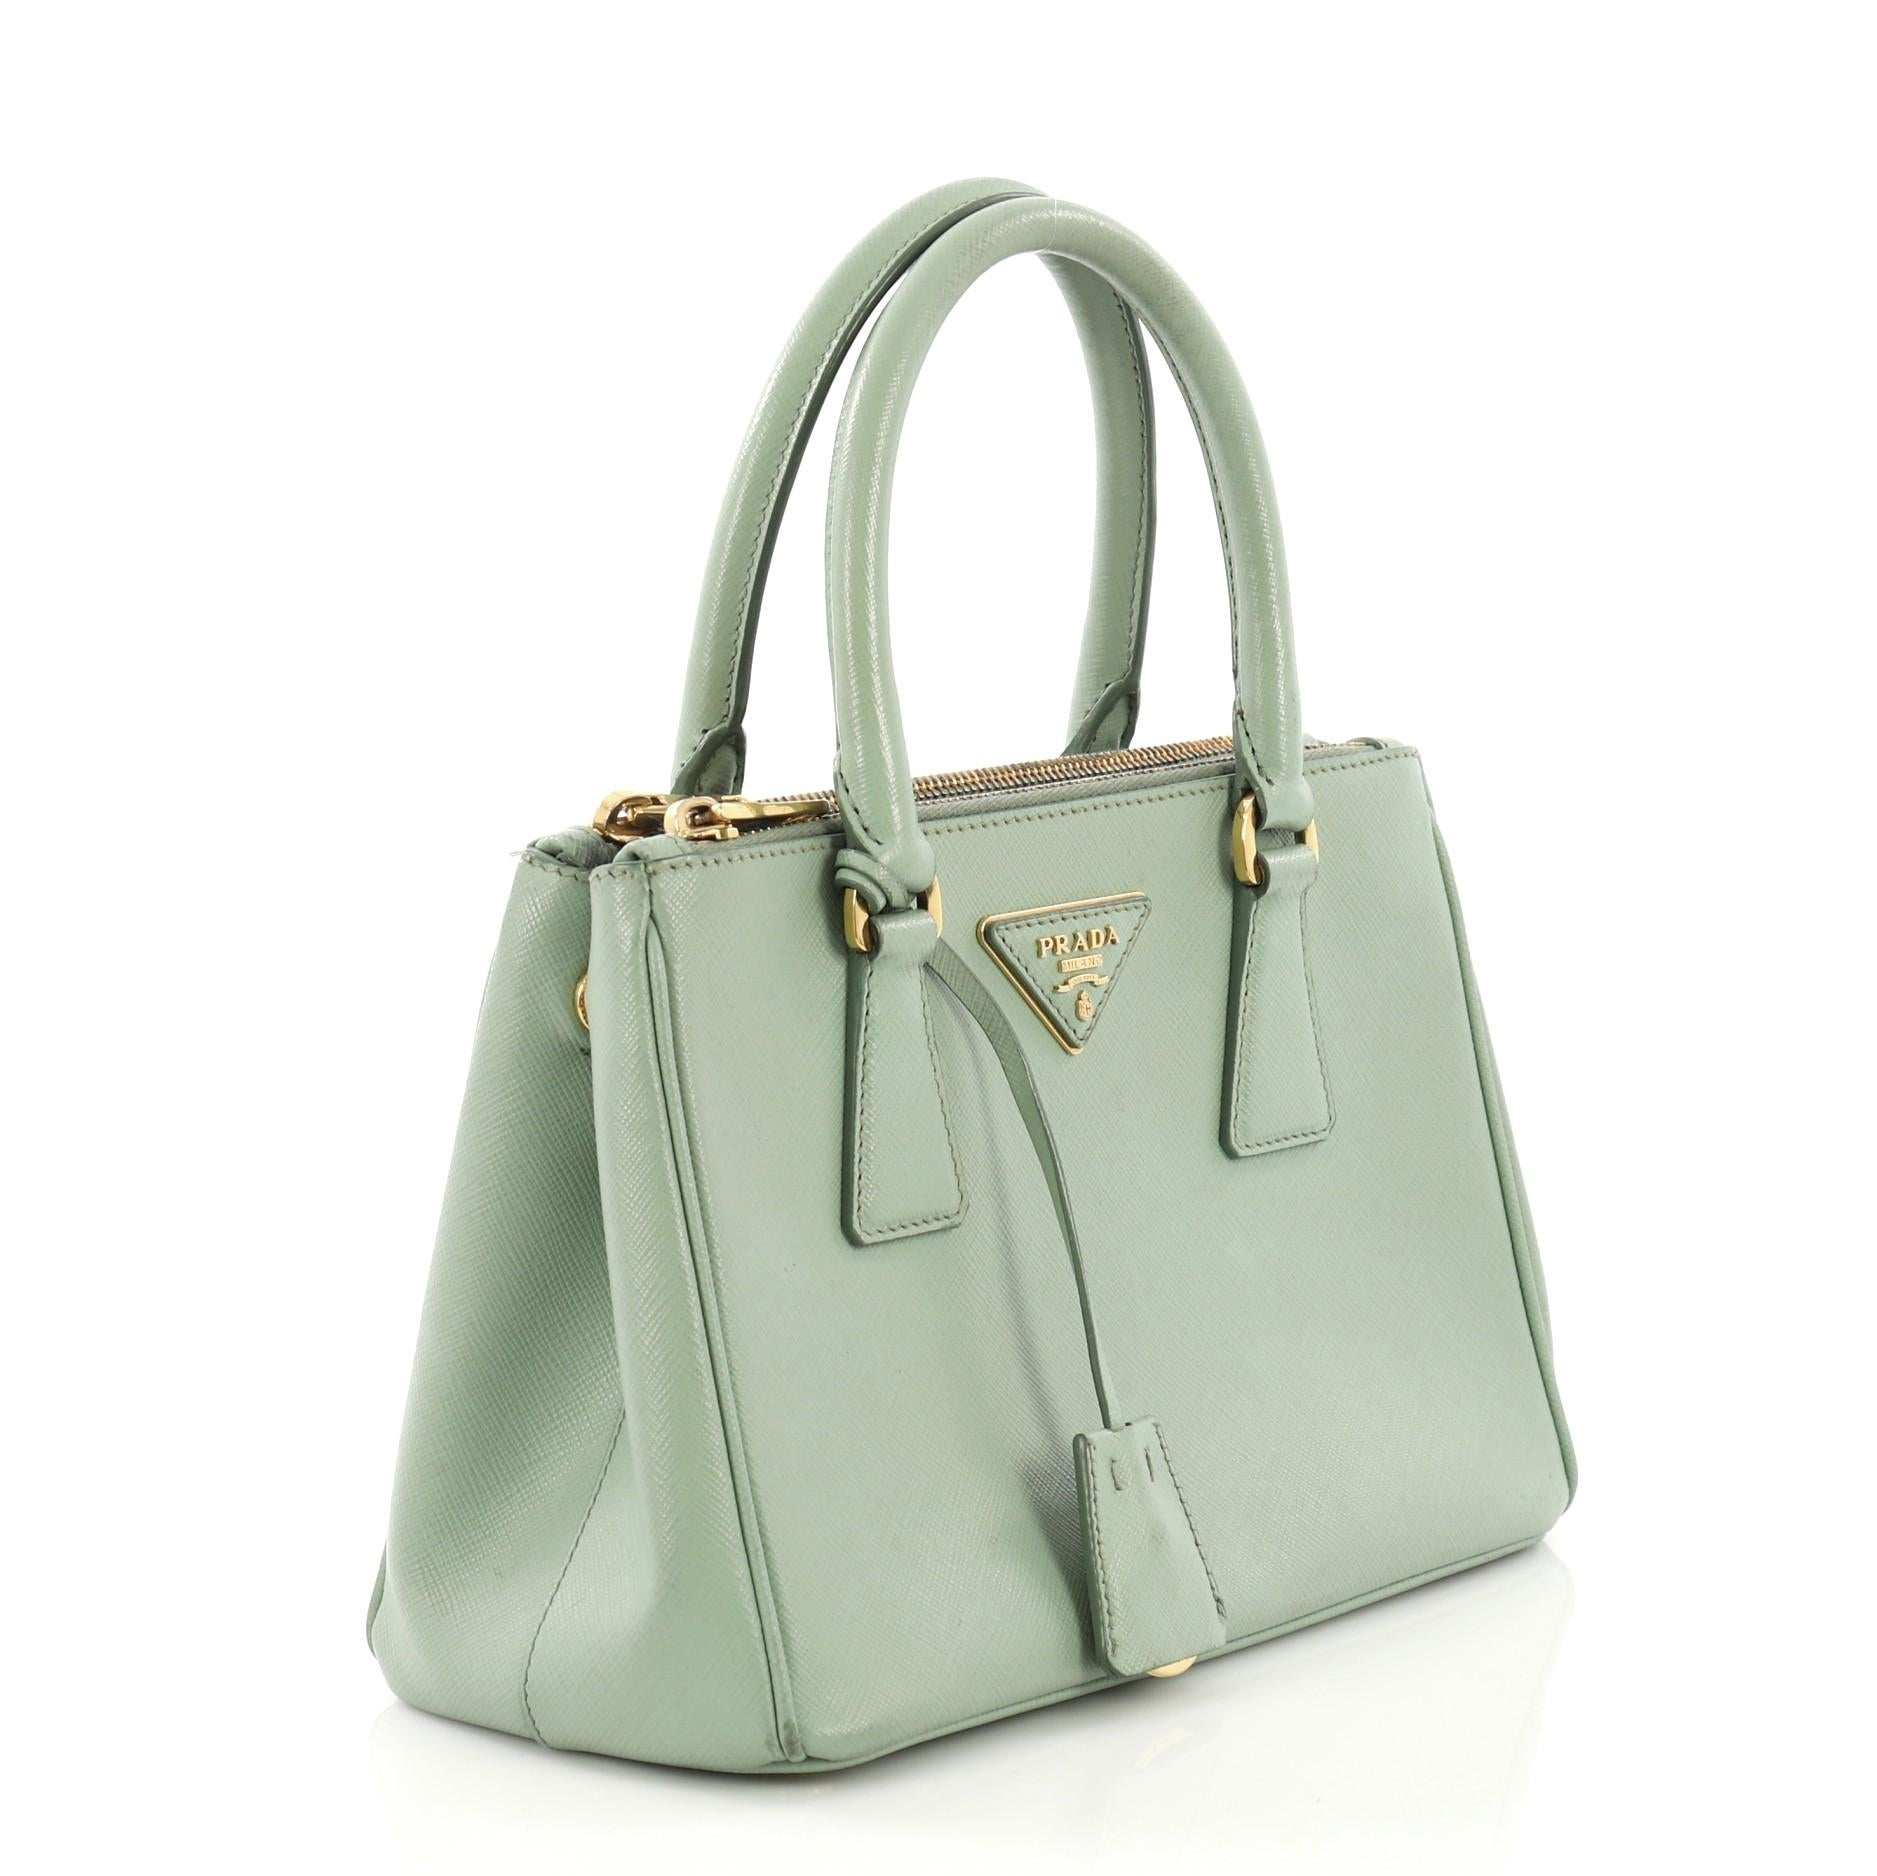 59c8578ef3ff Prada Galleria Double Zip Tote Saffiano Leather Small For Sale at 1stdibs